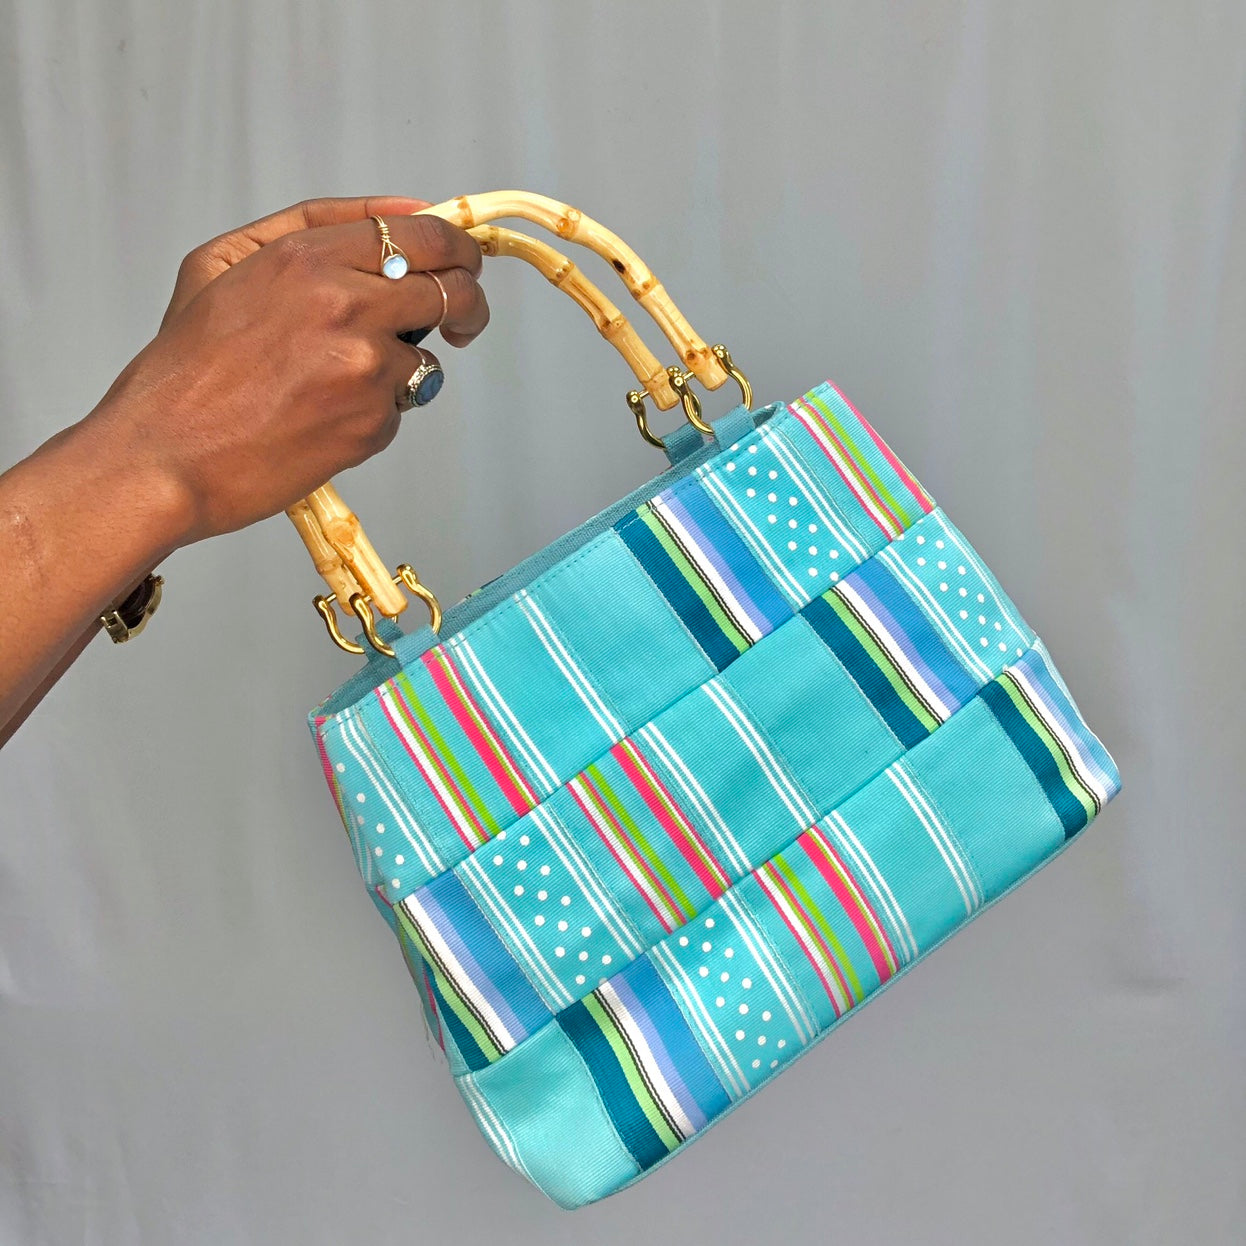 Blue Colorful Patterned Purse